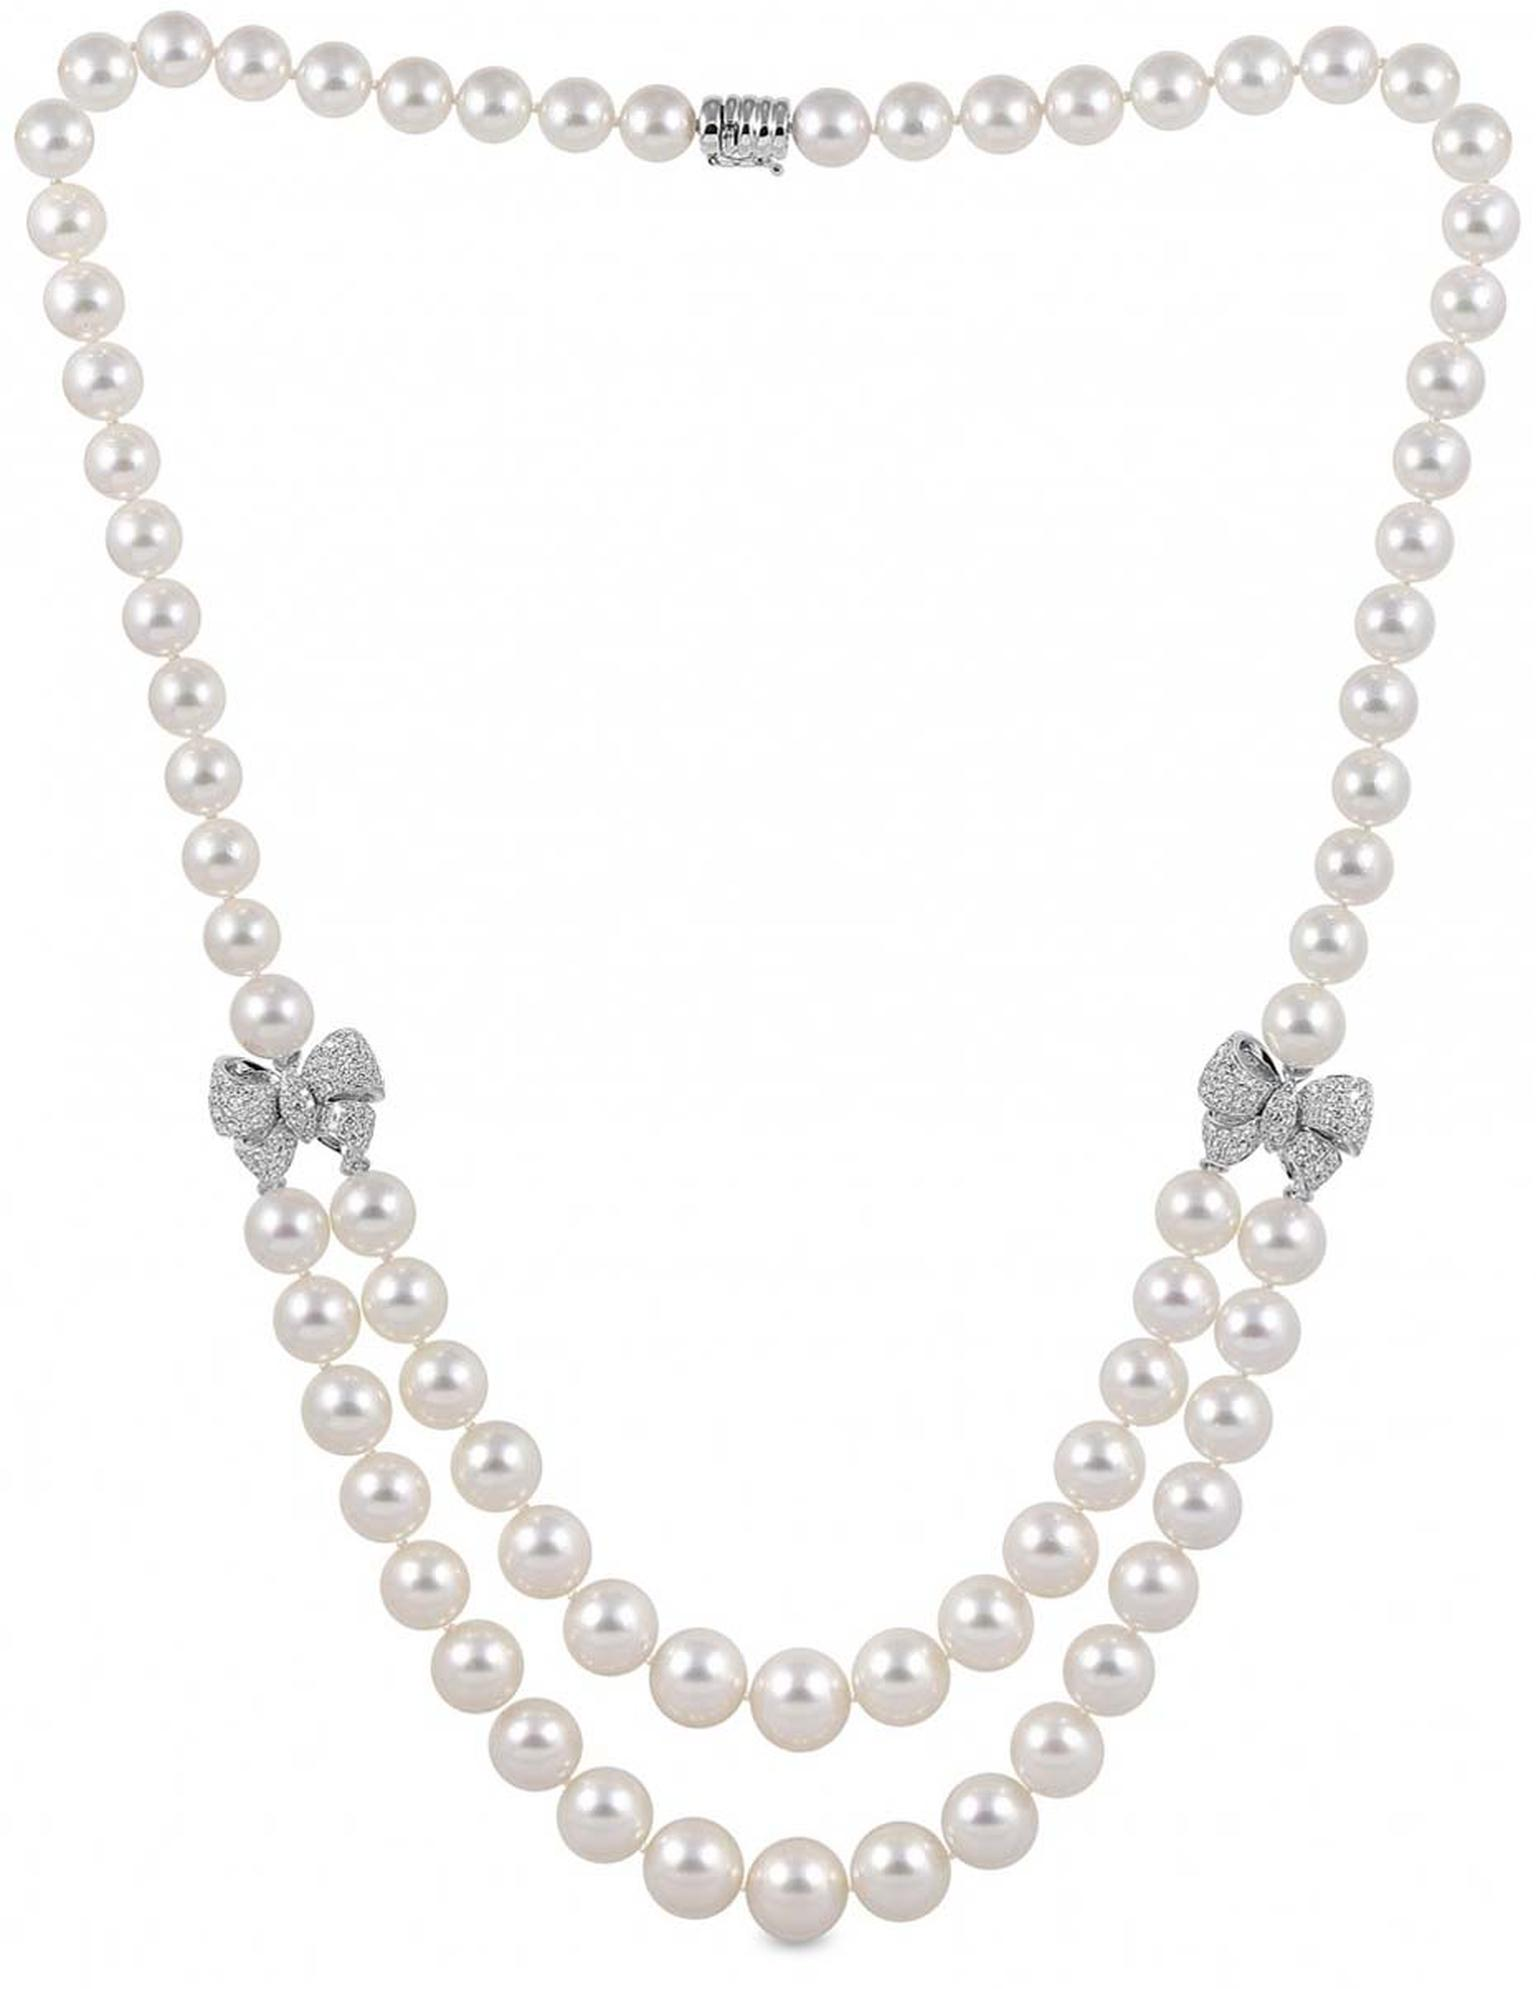 YOKO London jewellery white gold necklace with diamonds and South Sea pearls ranging in size from 9-13mm.